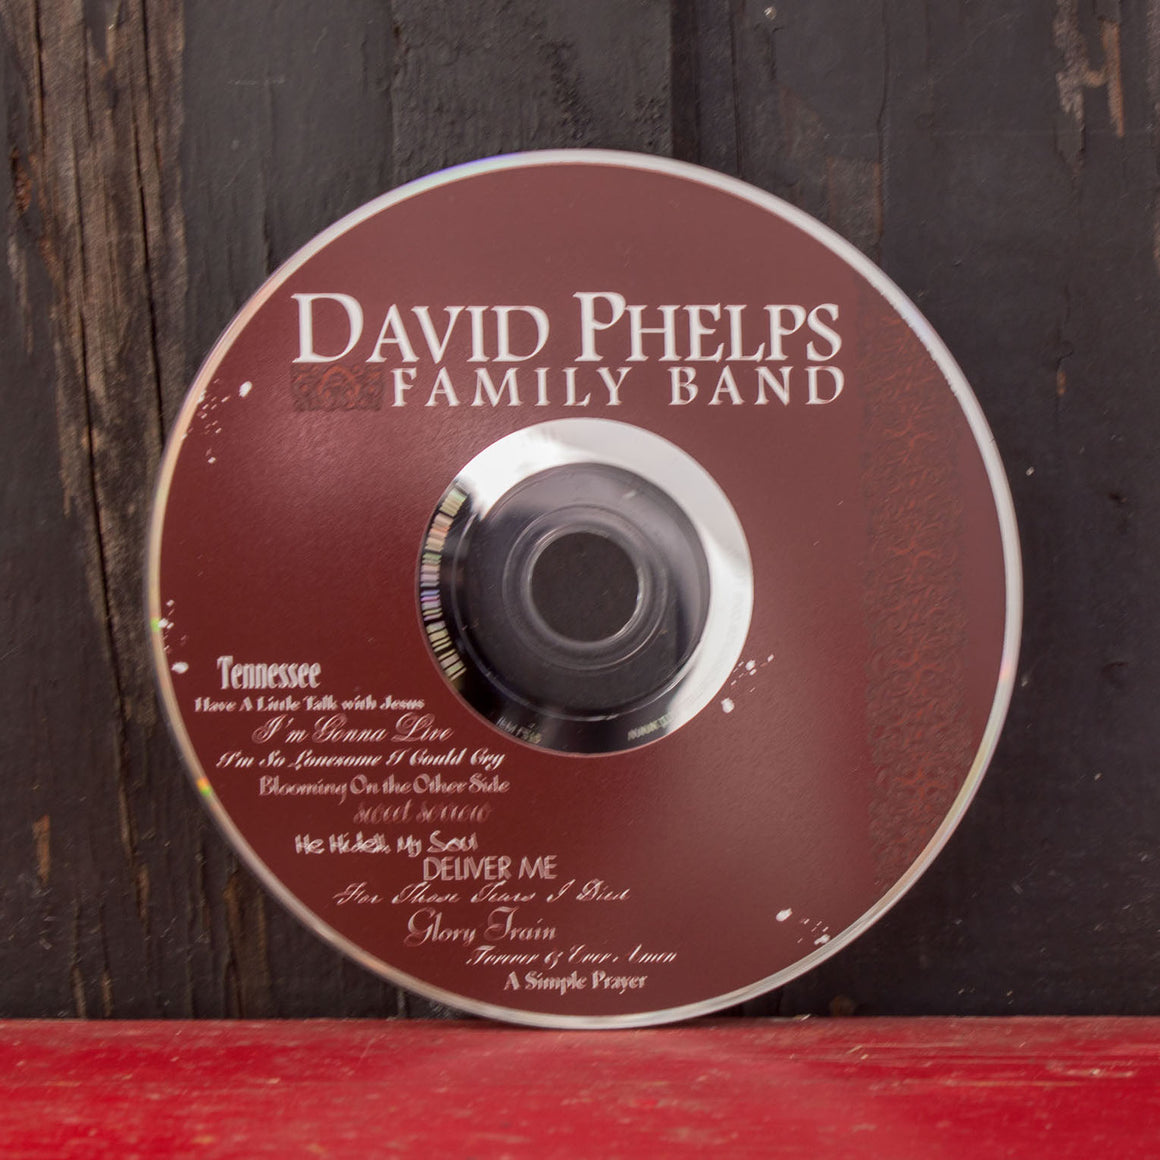 David Phelps Family Band CD